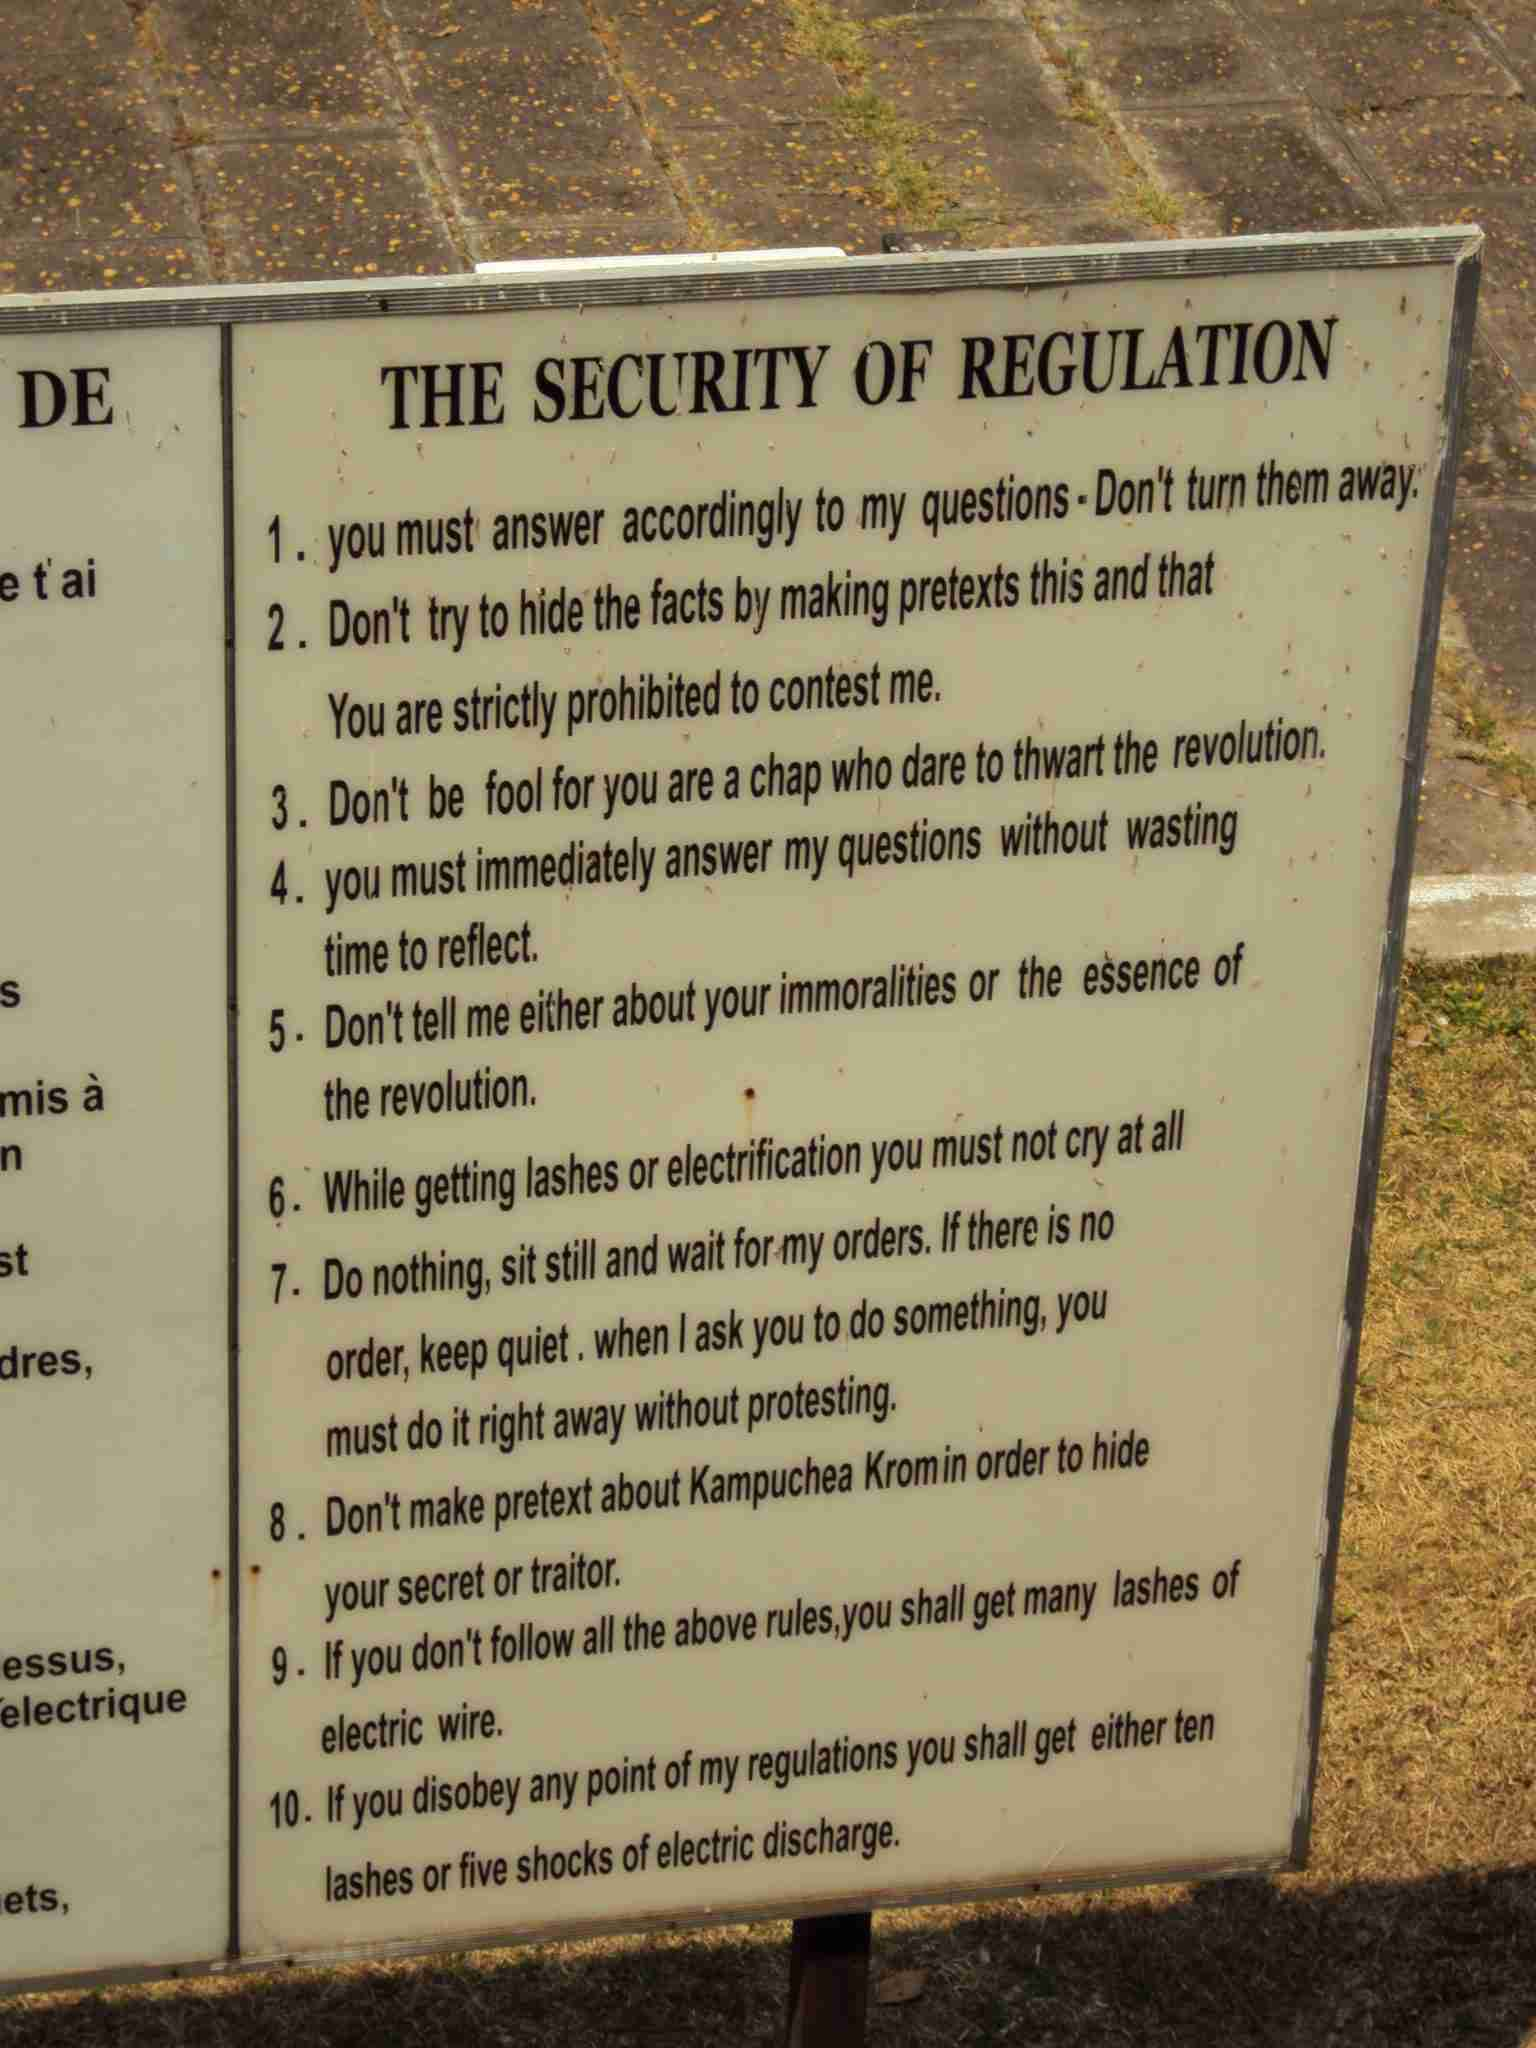 The Security of Regulation